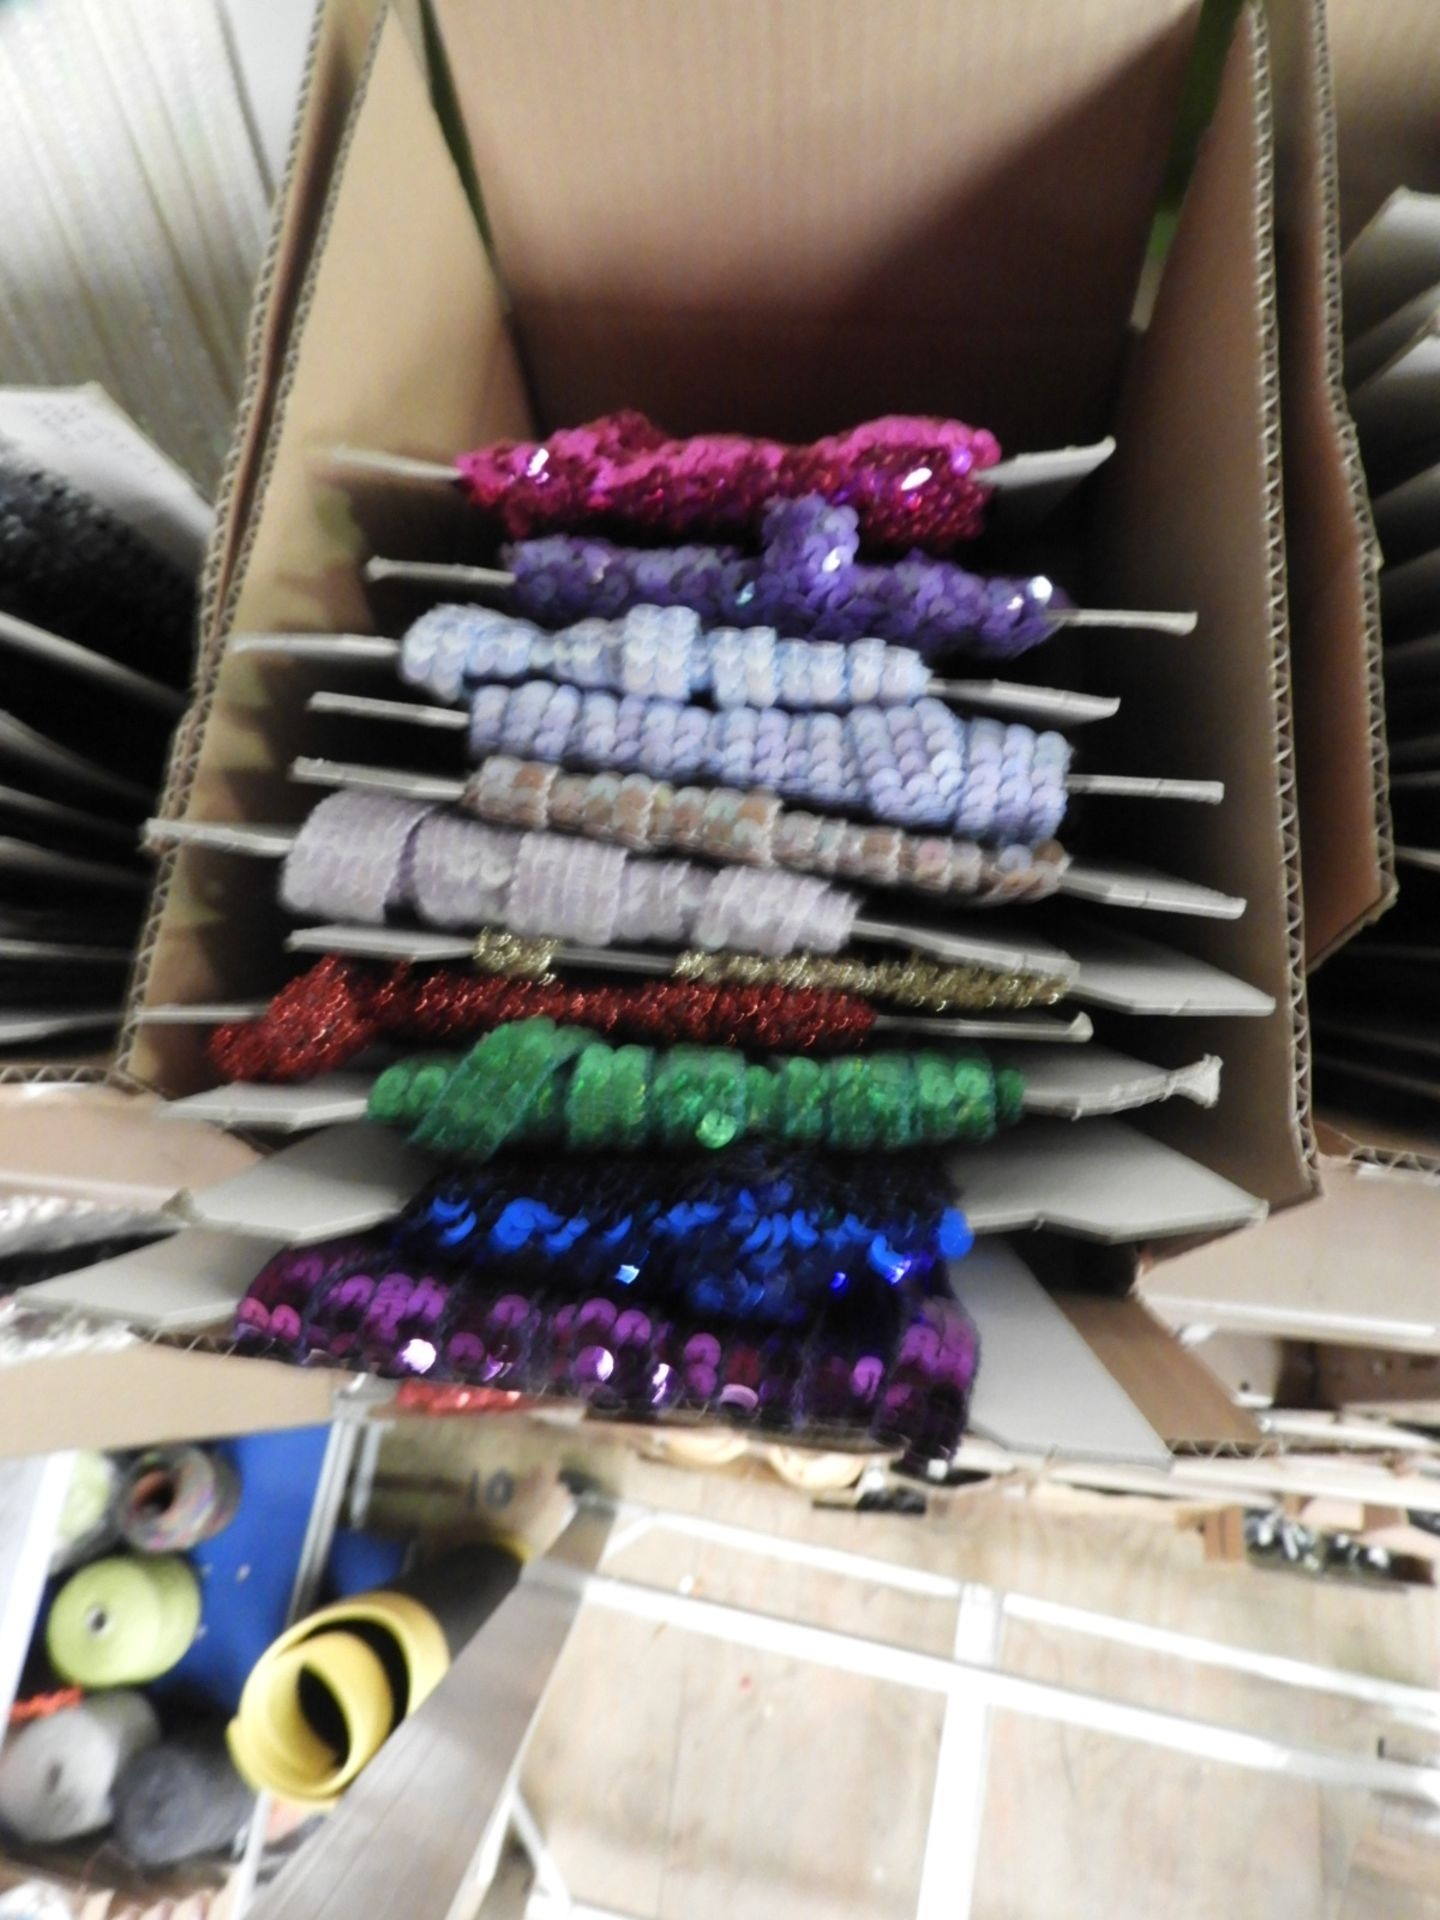 Lot 3 - Box Containing Assorted Braids (as per Photograph)